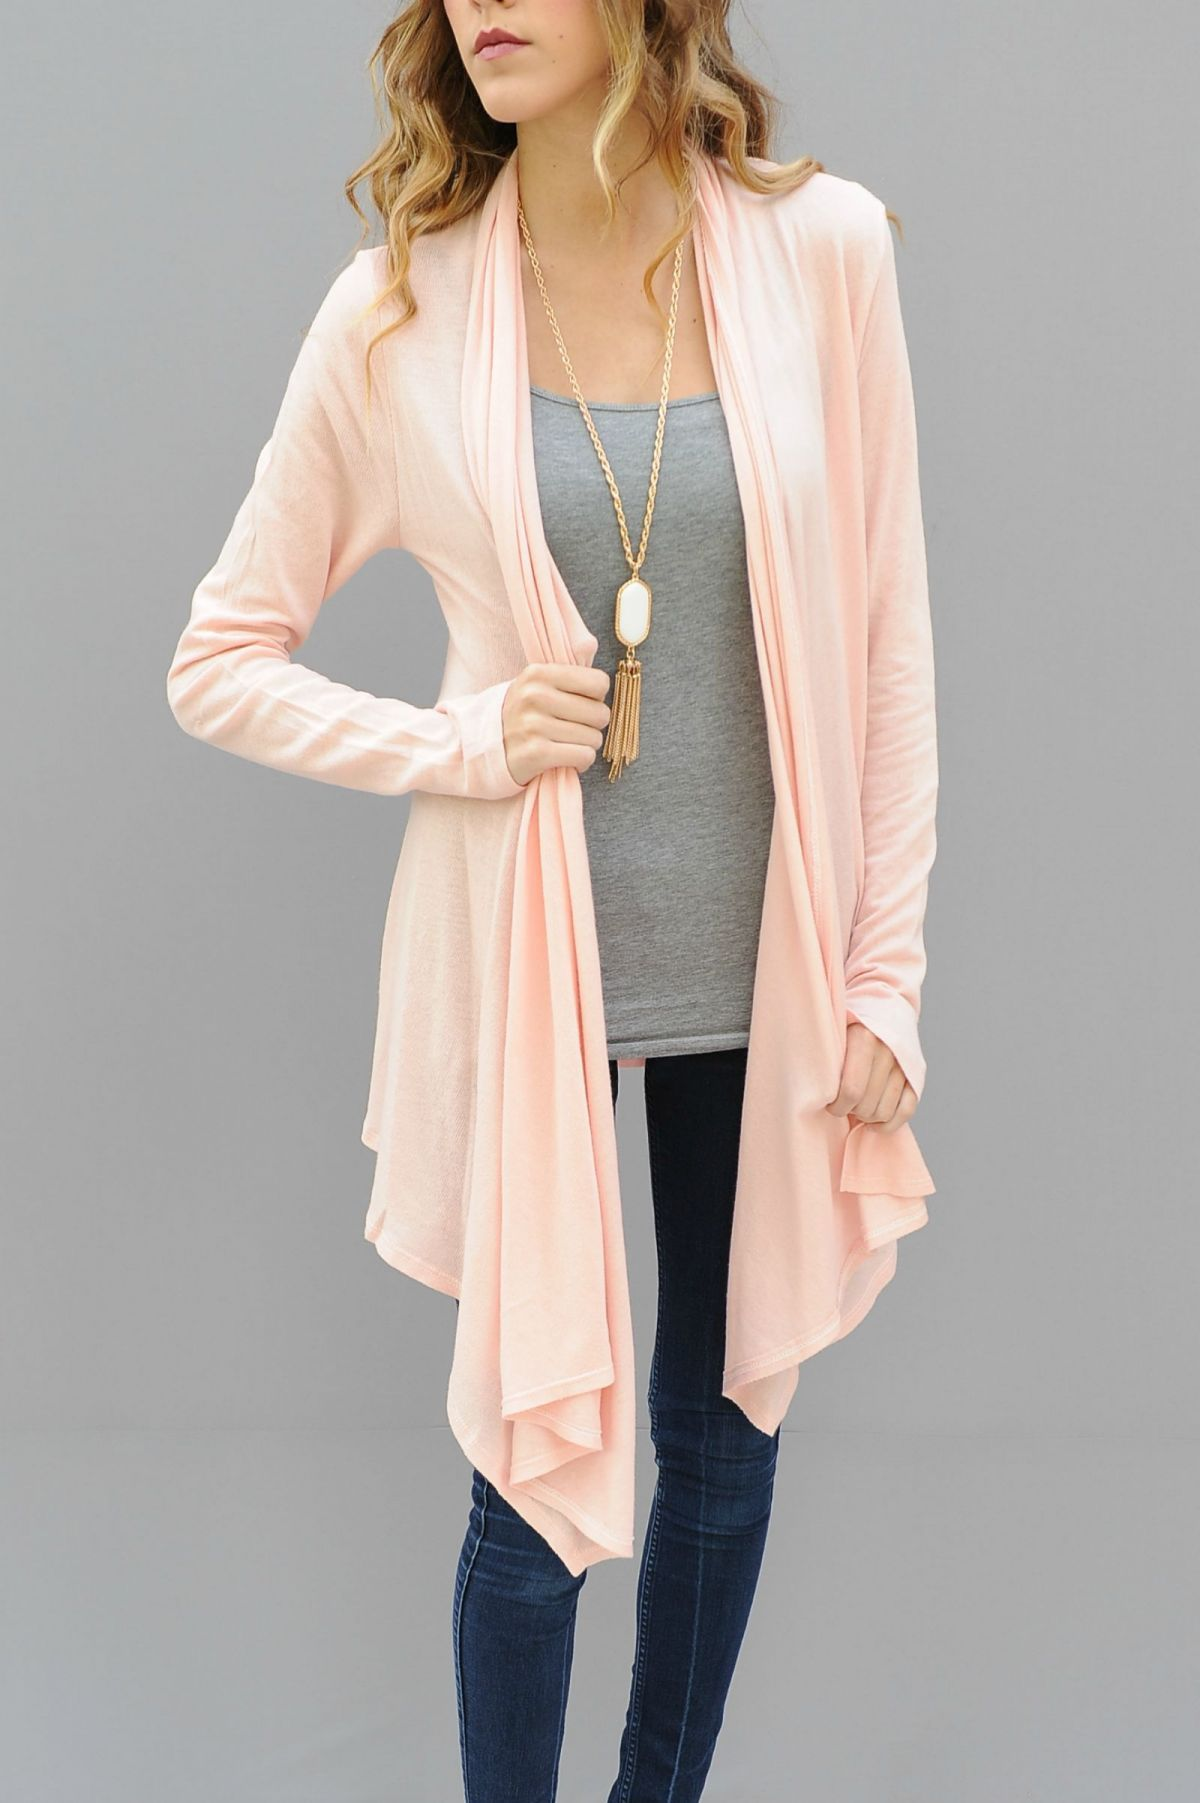 ALMOST GONE! A great piece for fall. A light pink Cardigan to wear ...